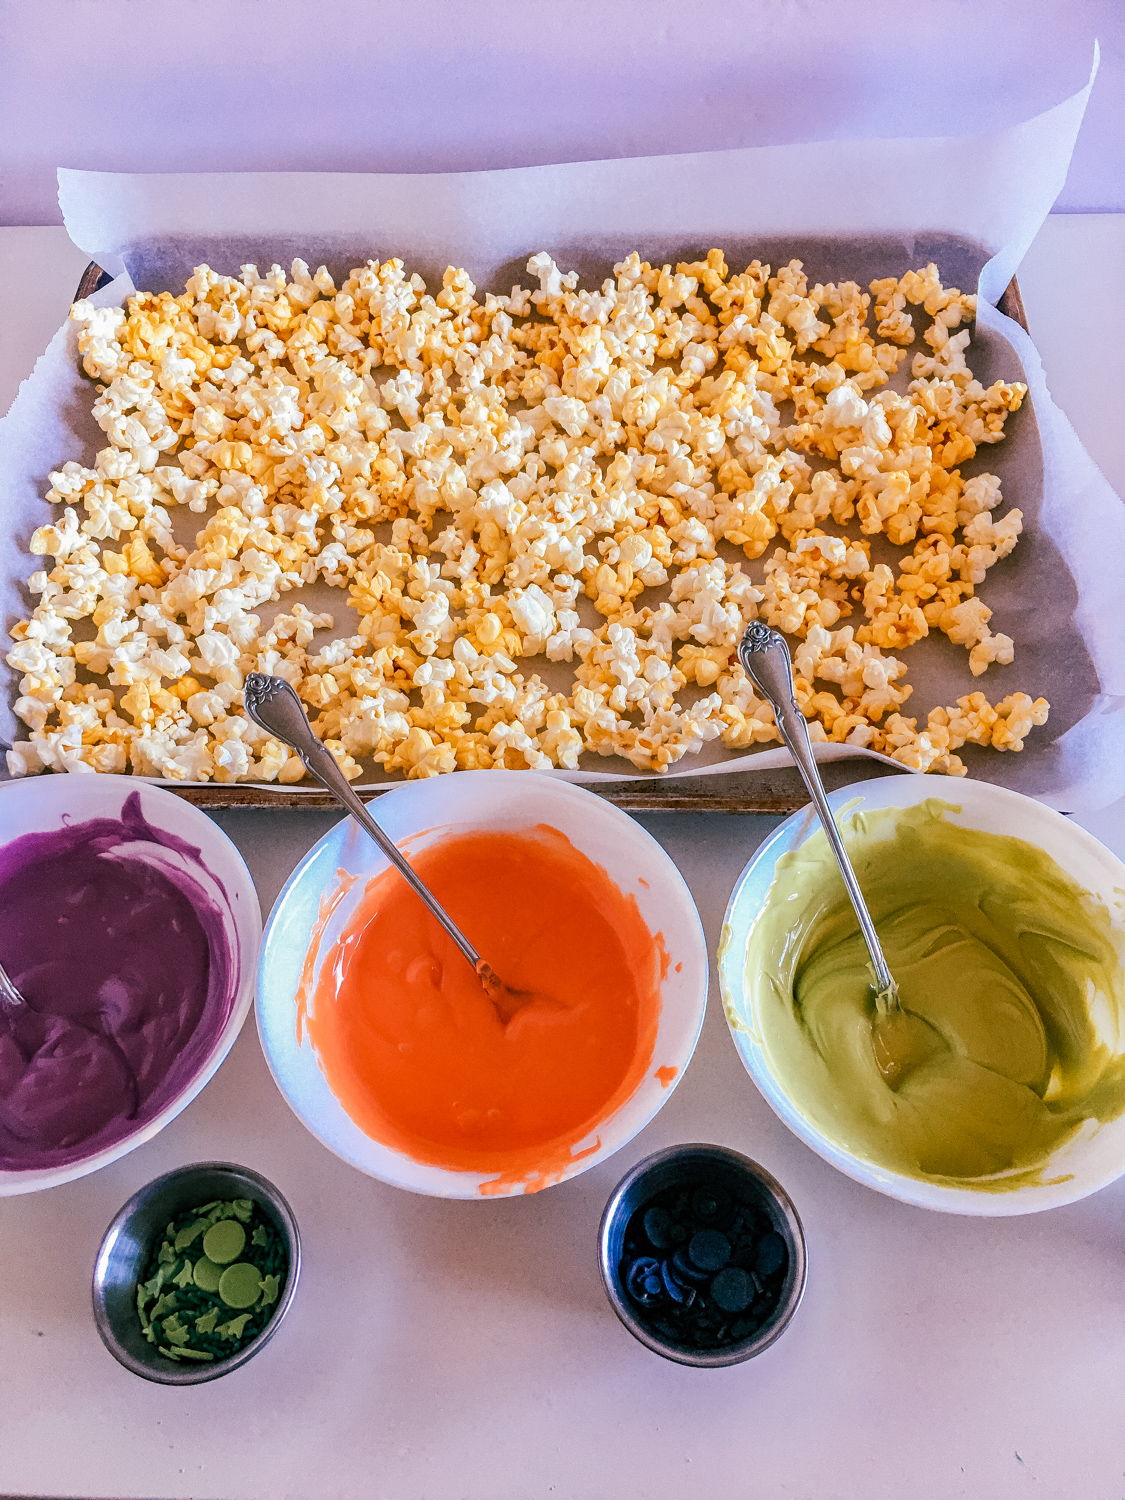 popped popcorn and halloween colored candy melts melted in bowls